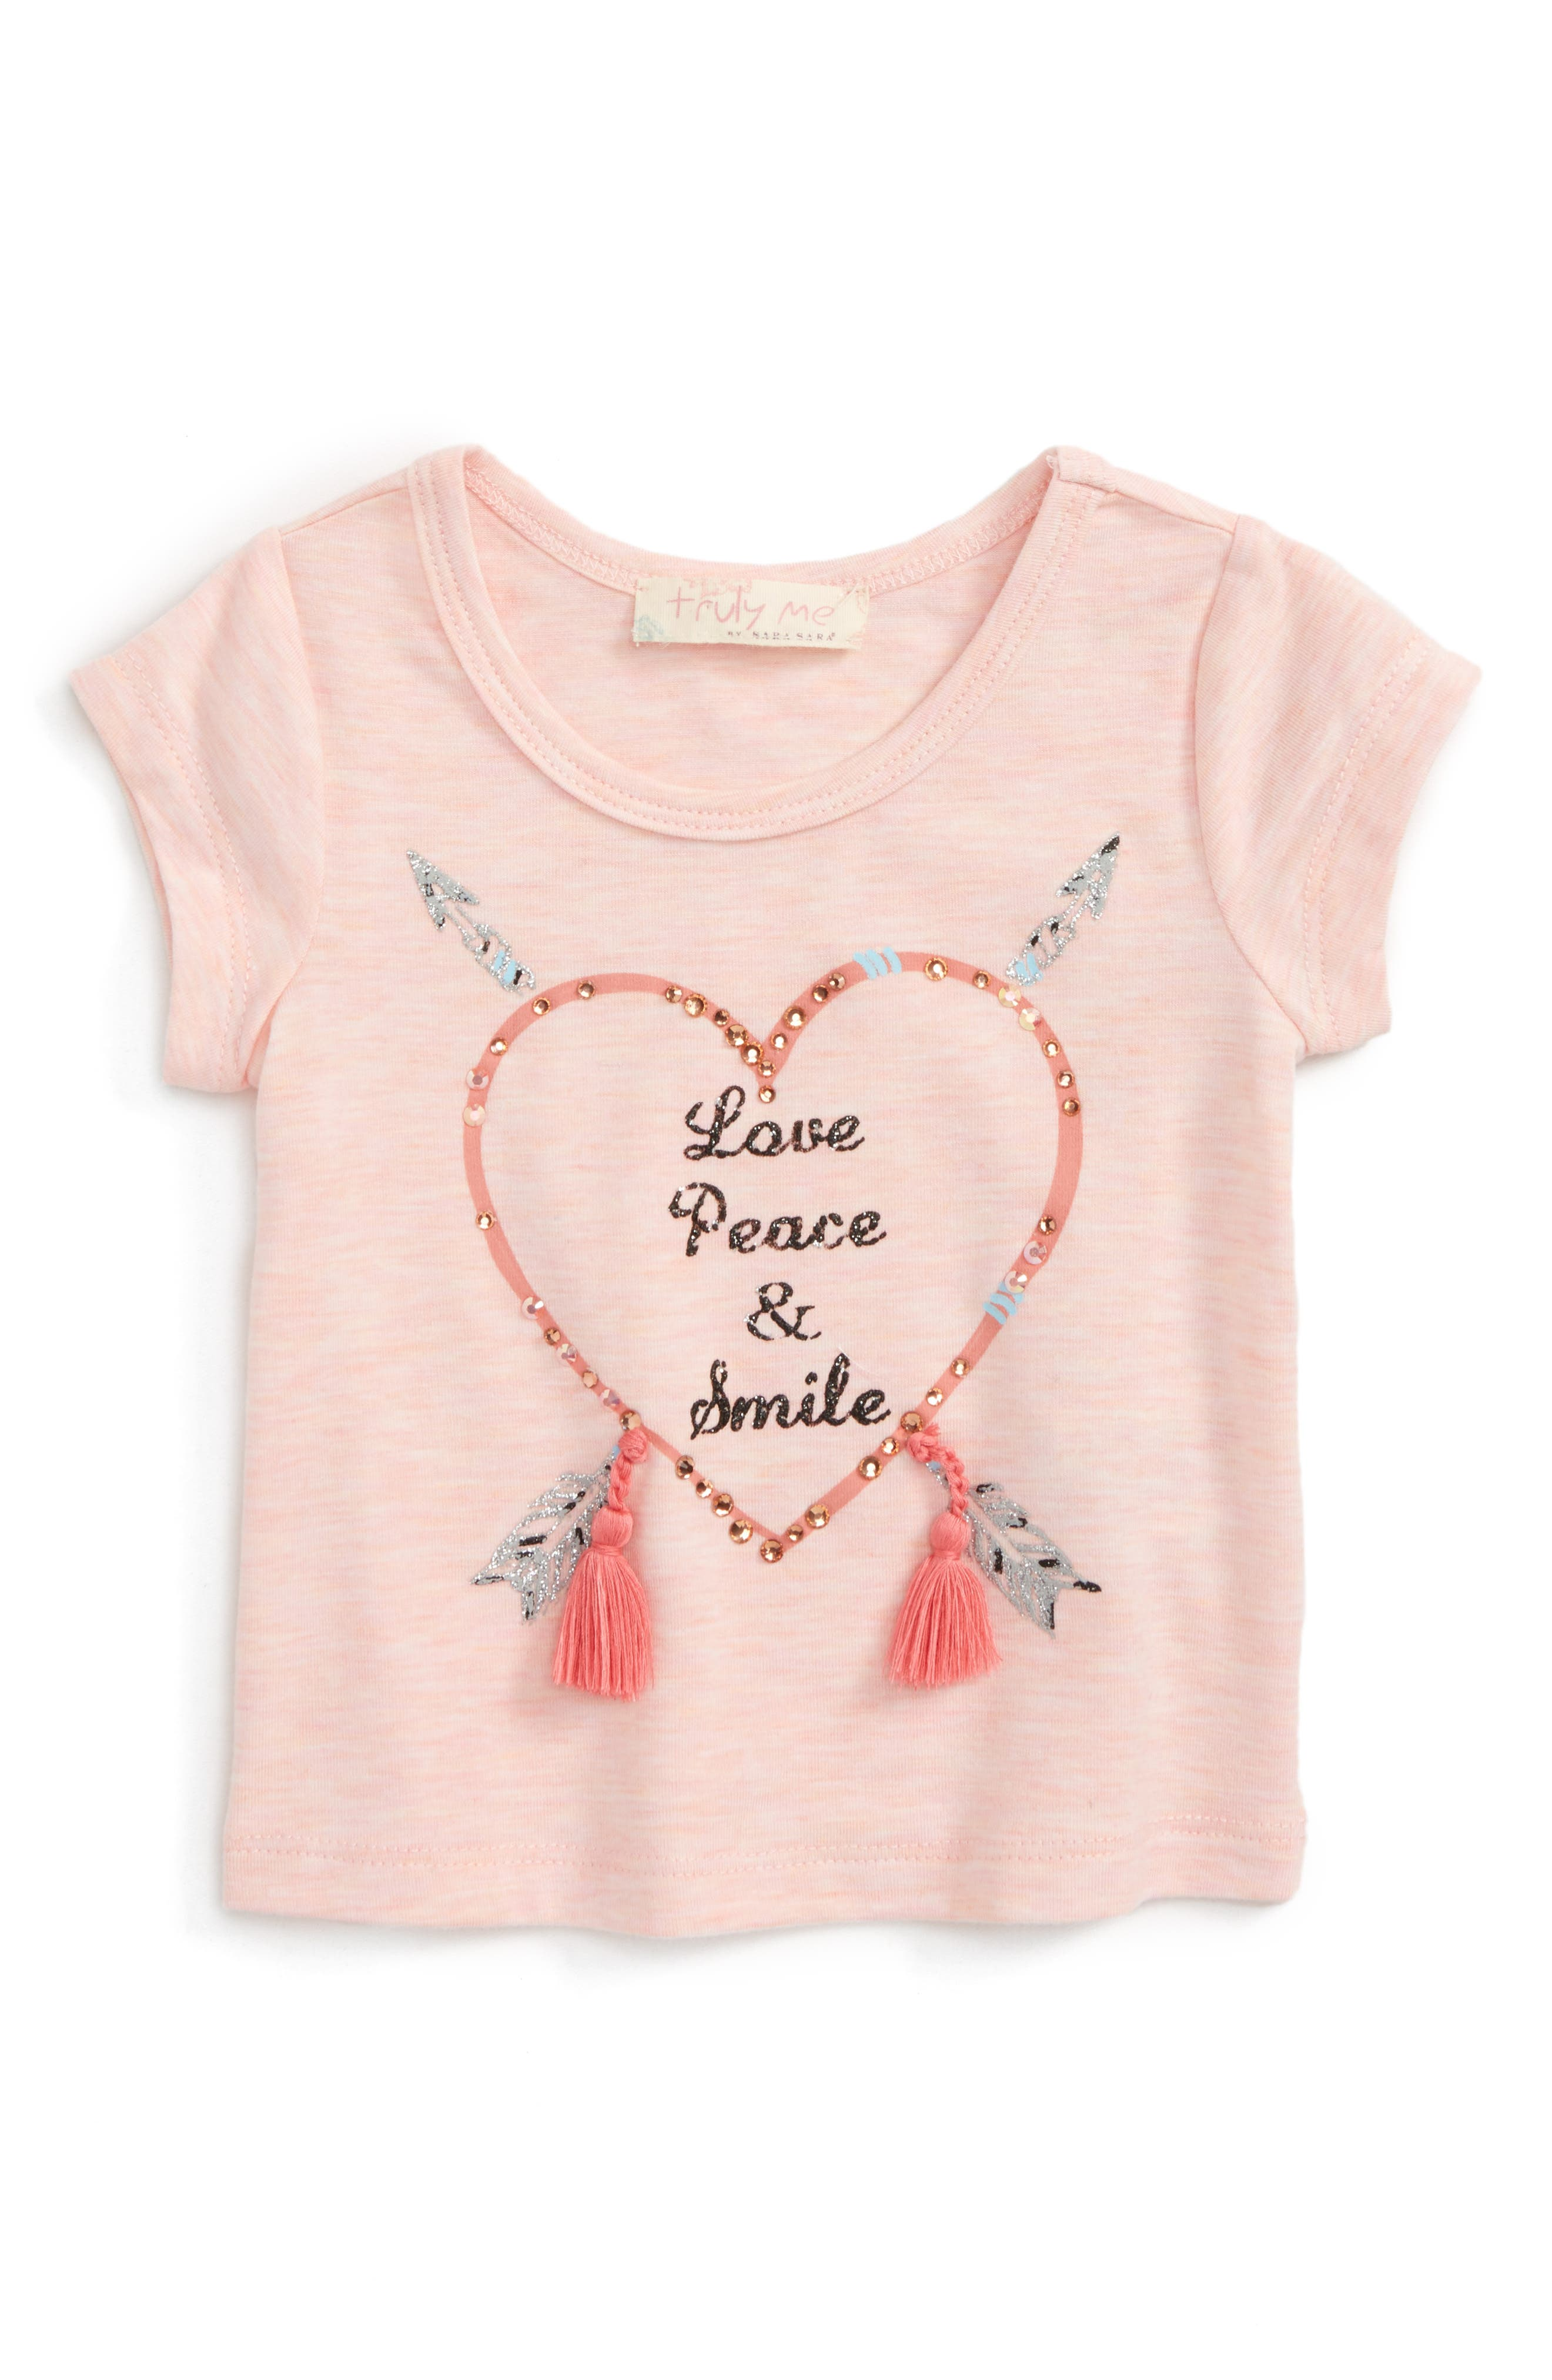 Love Peace Smile Tee,                             Main thumbnail 1, color,                             Light Pink